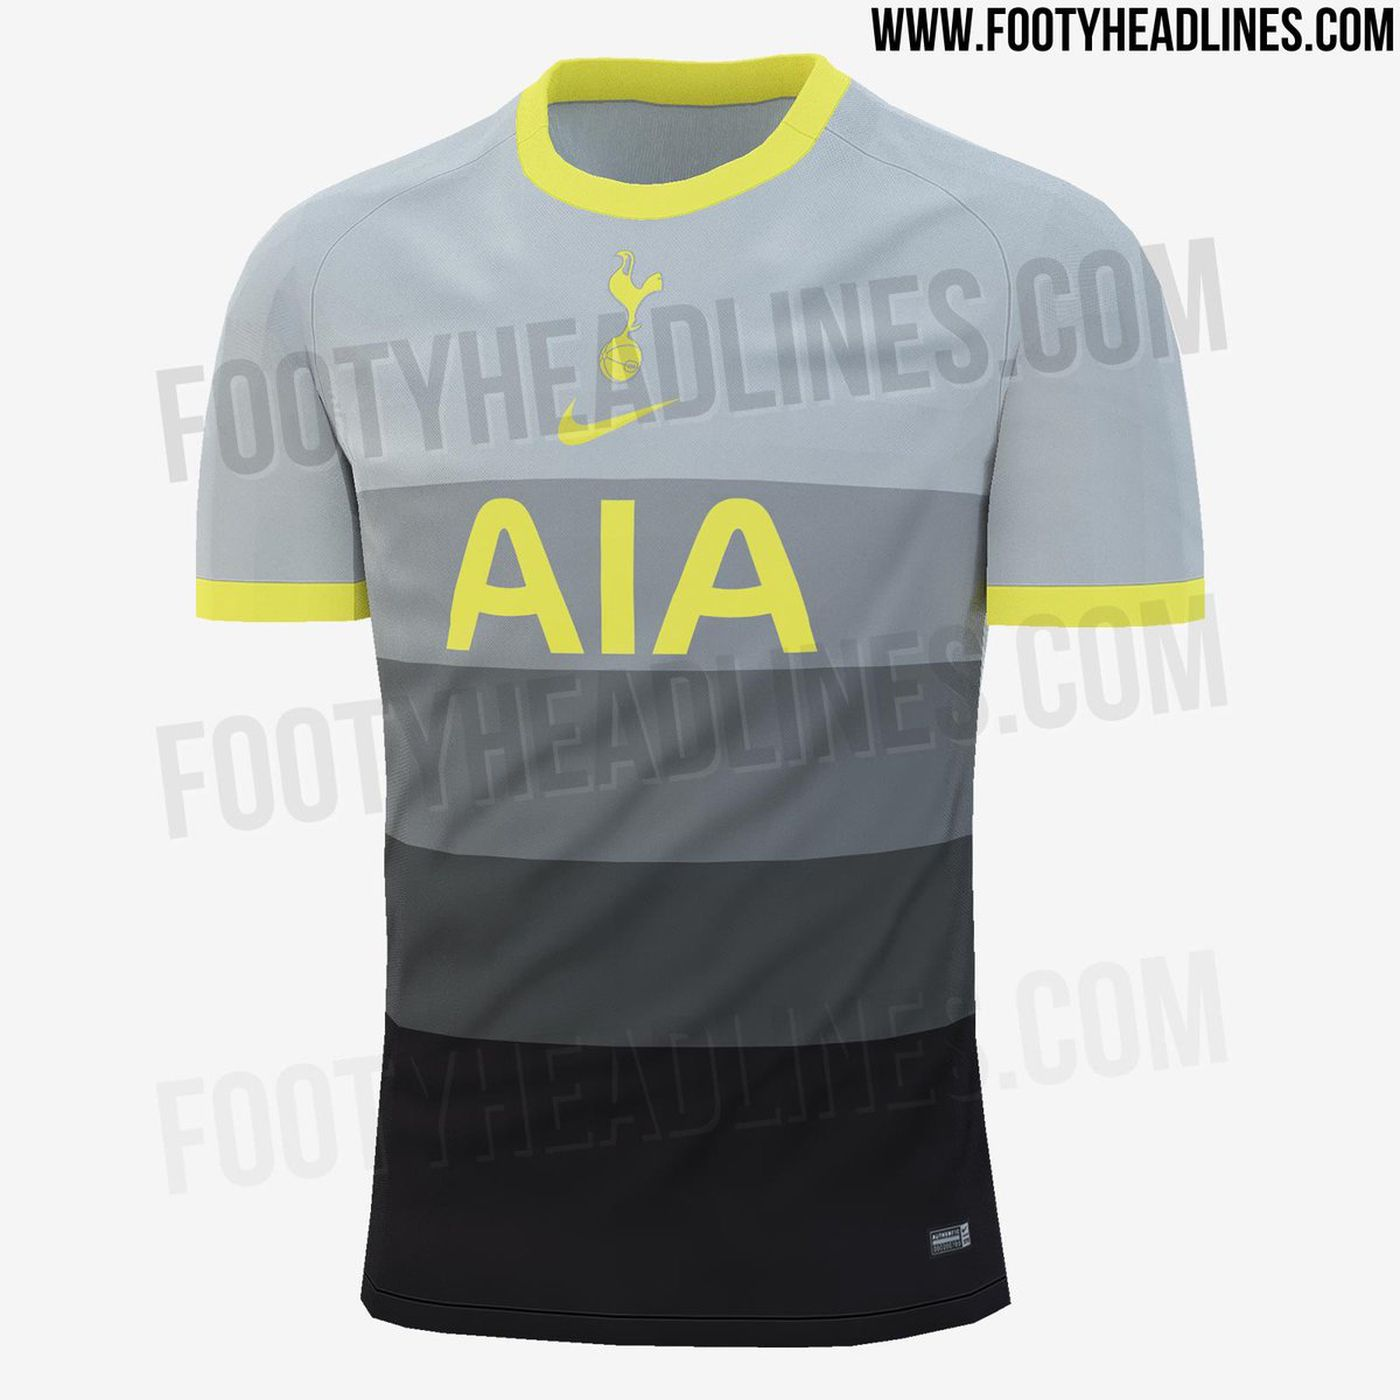 Tottenham Apparently Have A Fourth Kit In 2020 21 And It Has Been Leaked Cartilage Free Captain